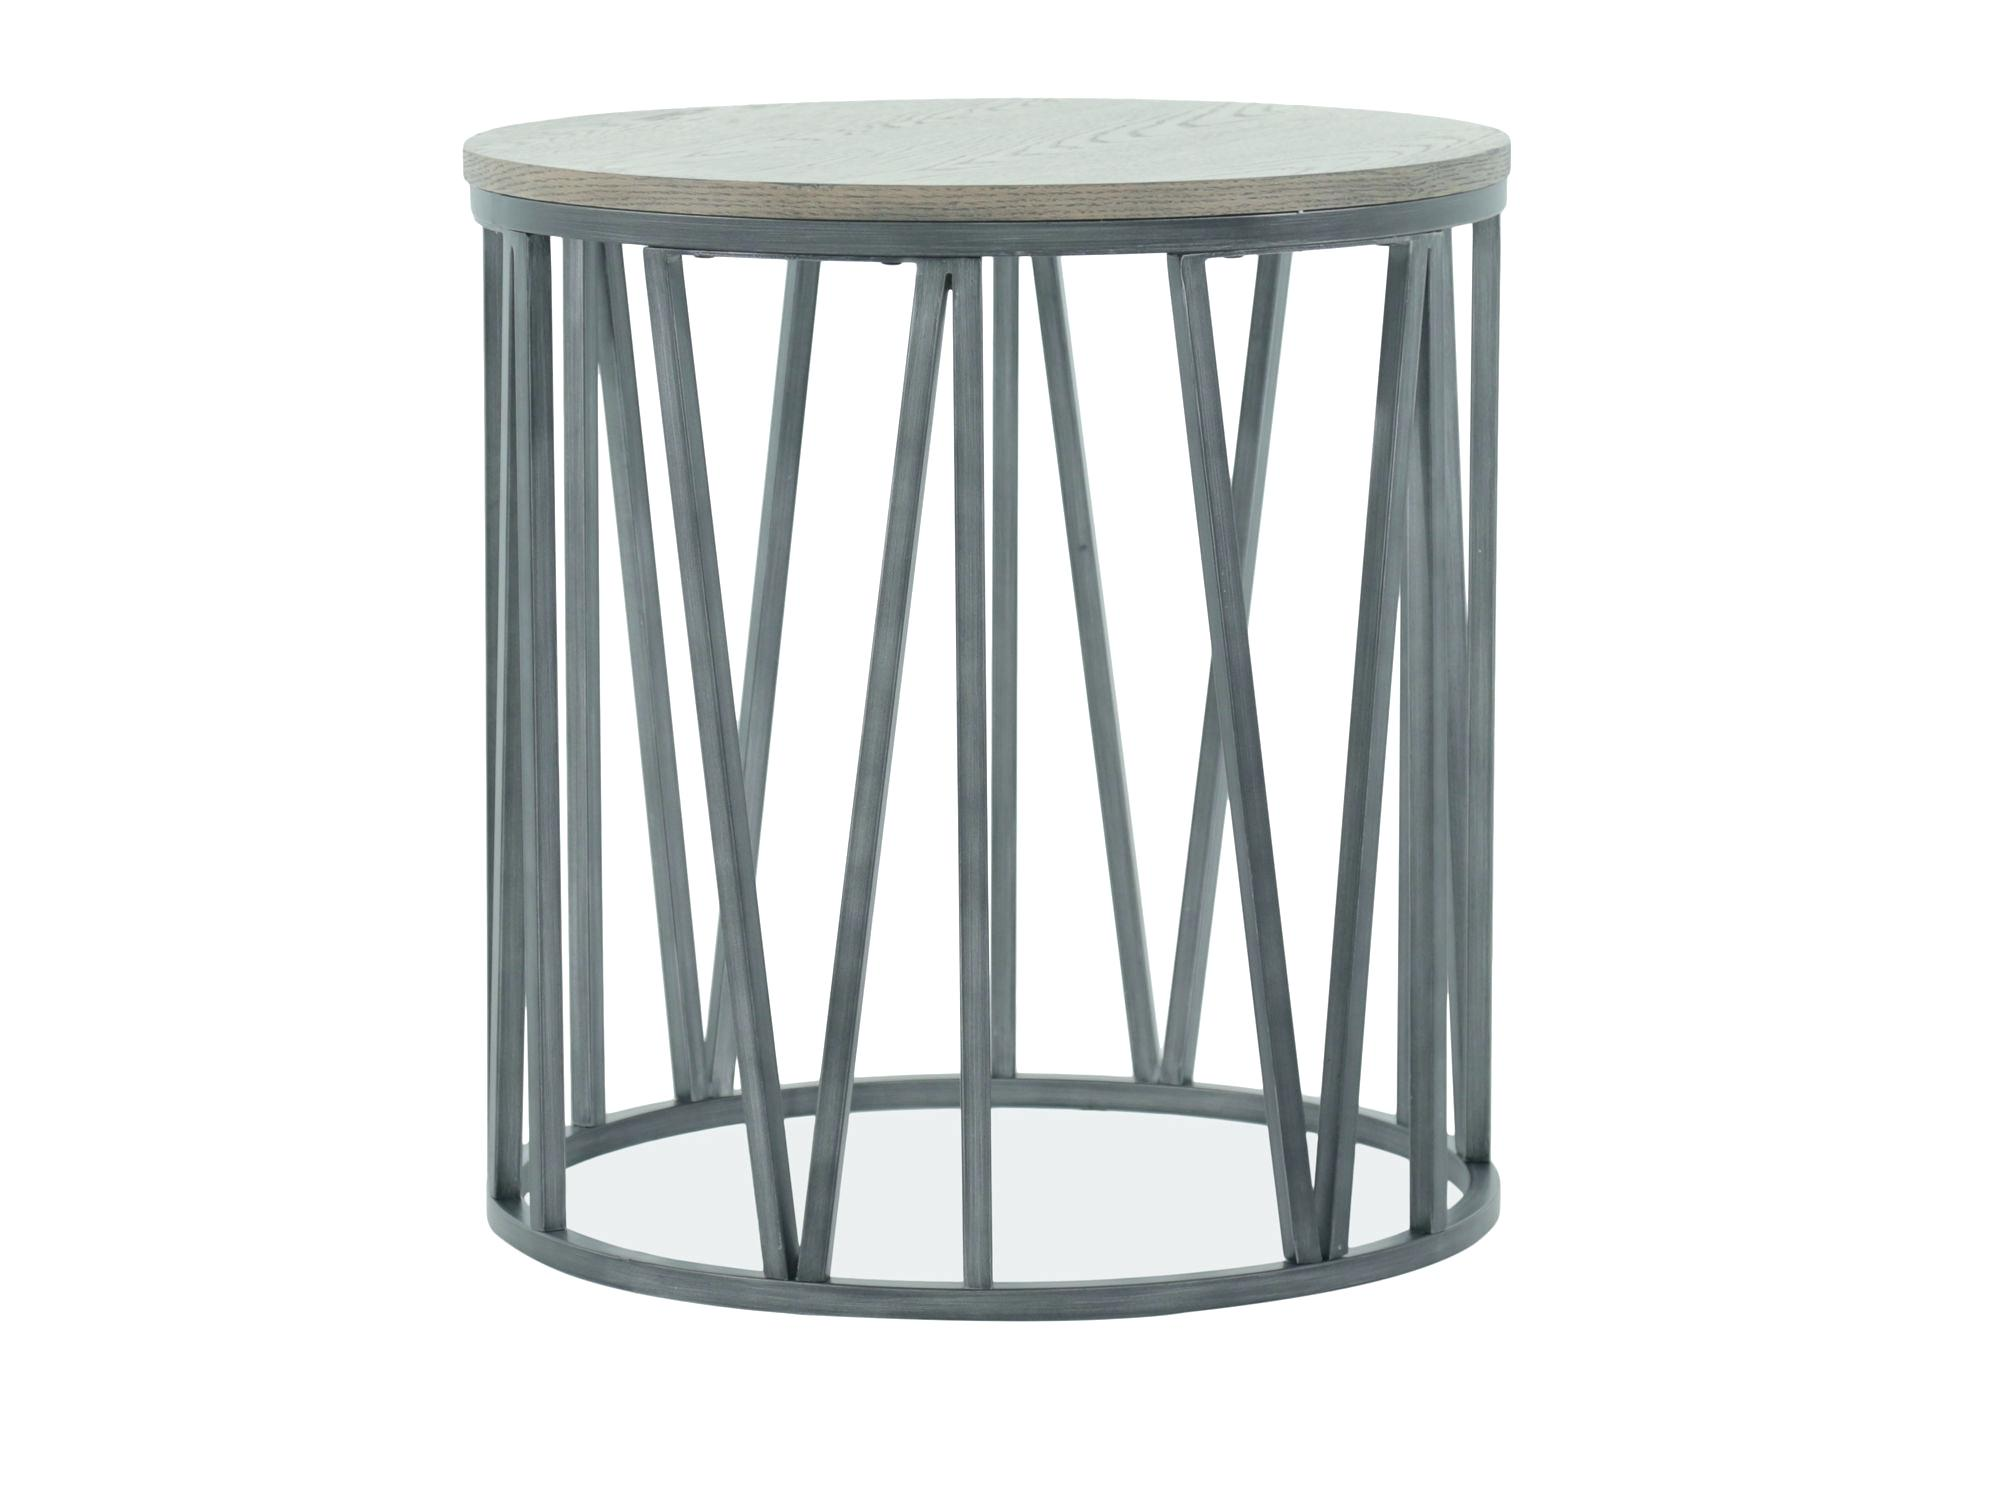 white drum coffee table round bedside silver accent tables side ceramic metal base casual end gray brothers furniture kitchen outstanding outdoor full size bathroom styles ikea